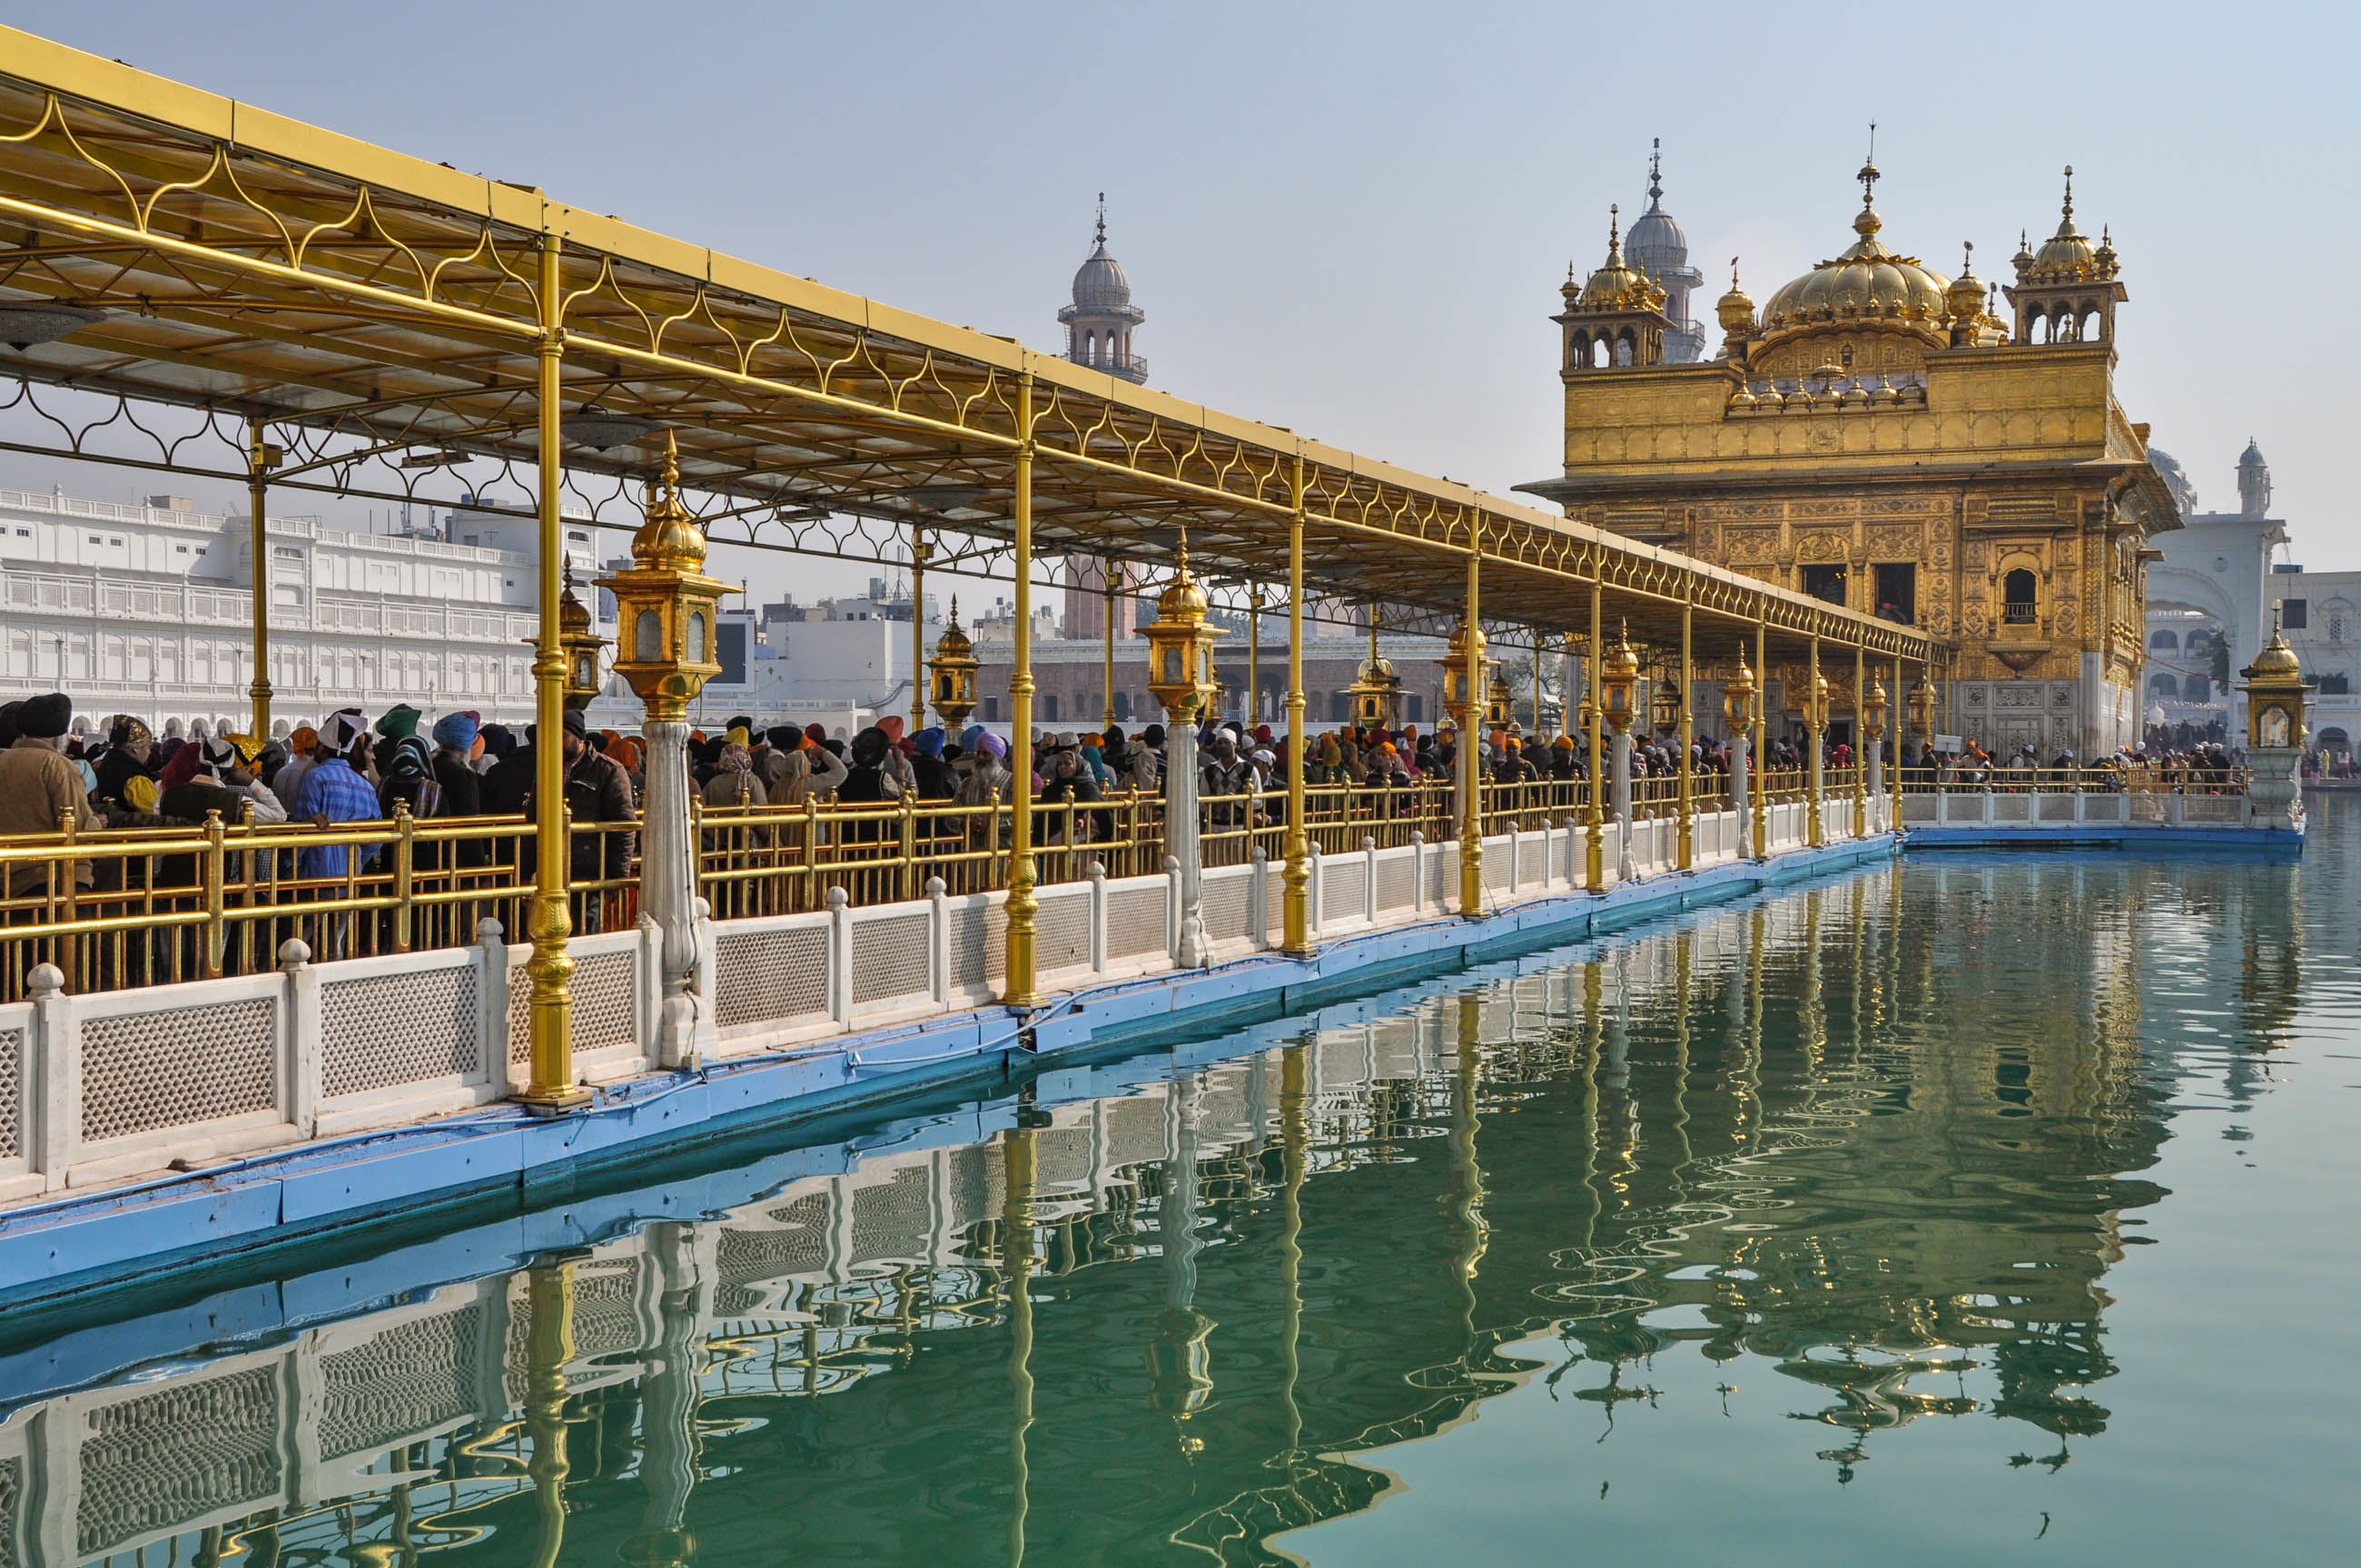 https://bubo.sk/uploads/galleries/4920/tomas_kubus_india_amritsar_dsc_0155.jpg